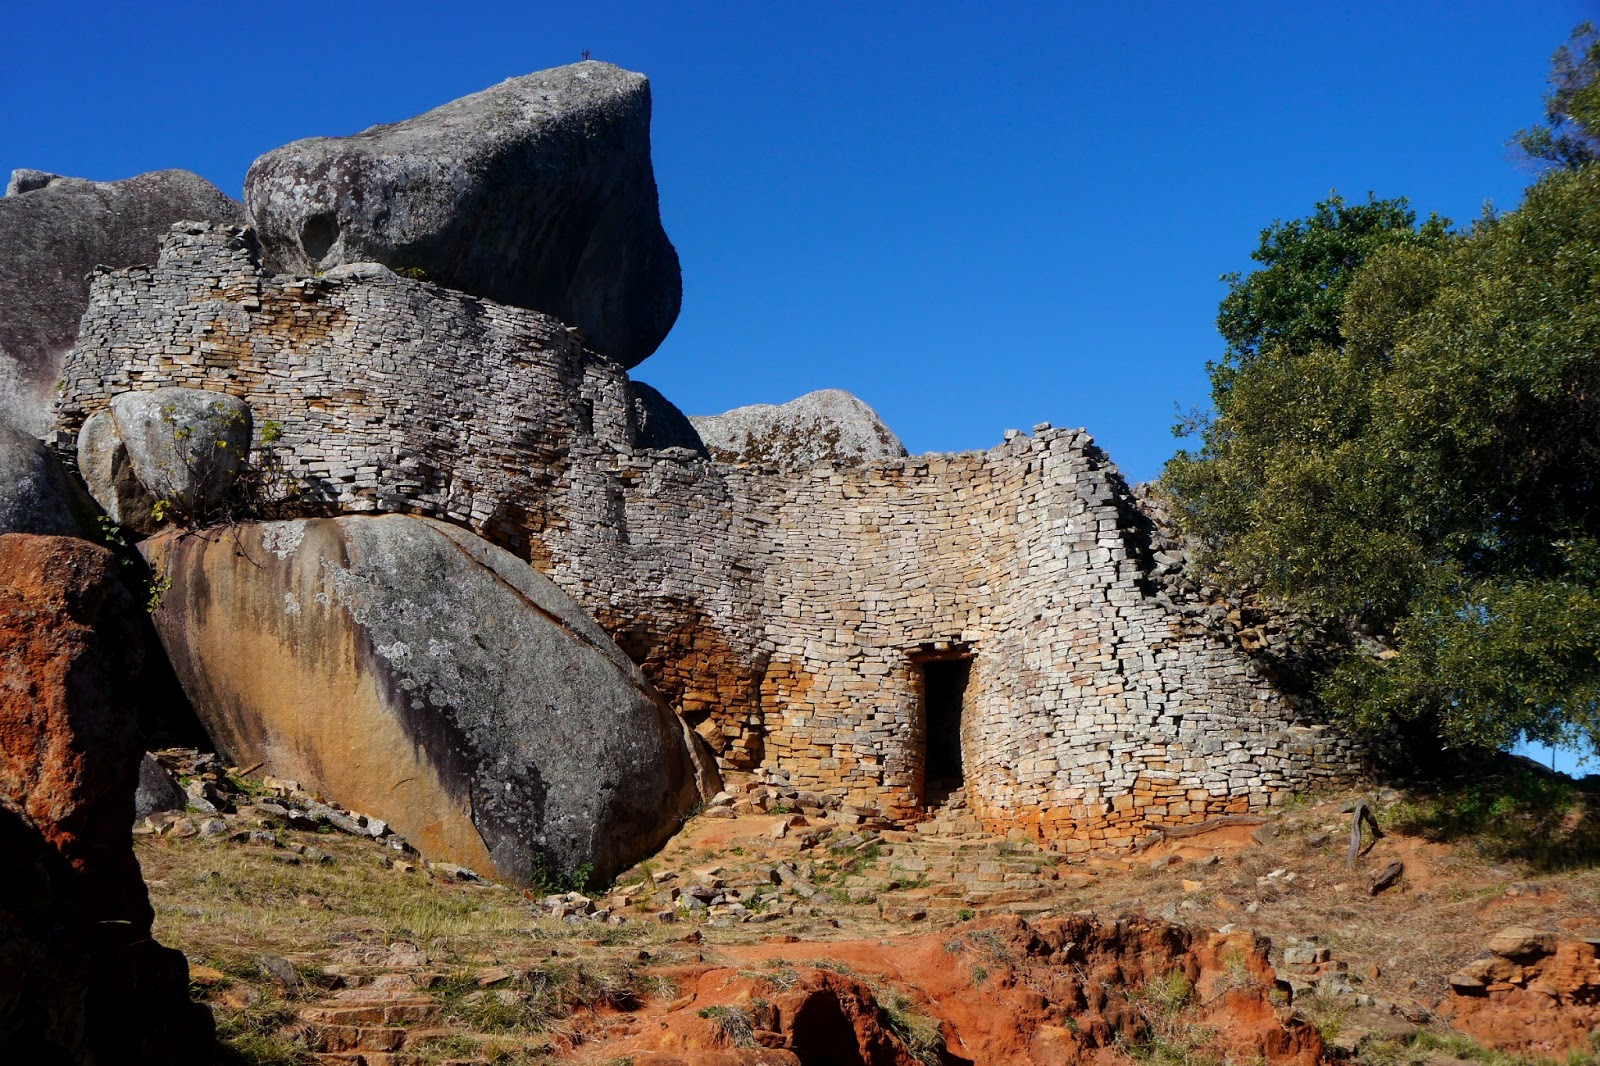 an analysis of great zimbabwe The coup in zimbabwe: the army sidelines robert mugabe, africa's great dictator nov 16th 2017, 9:48 from print edition the world should learn from his misrule, and help zimbabwe recover from it.